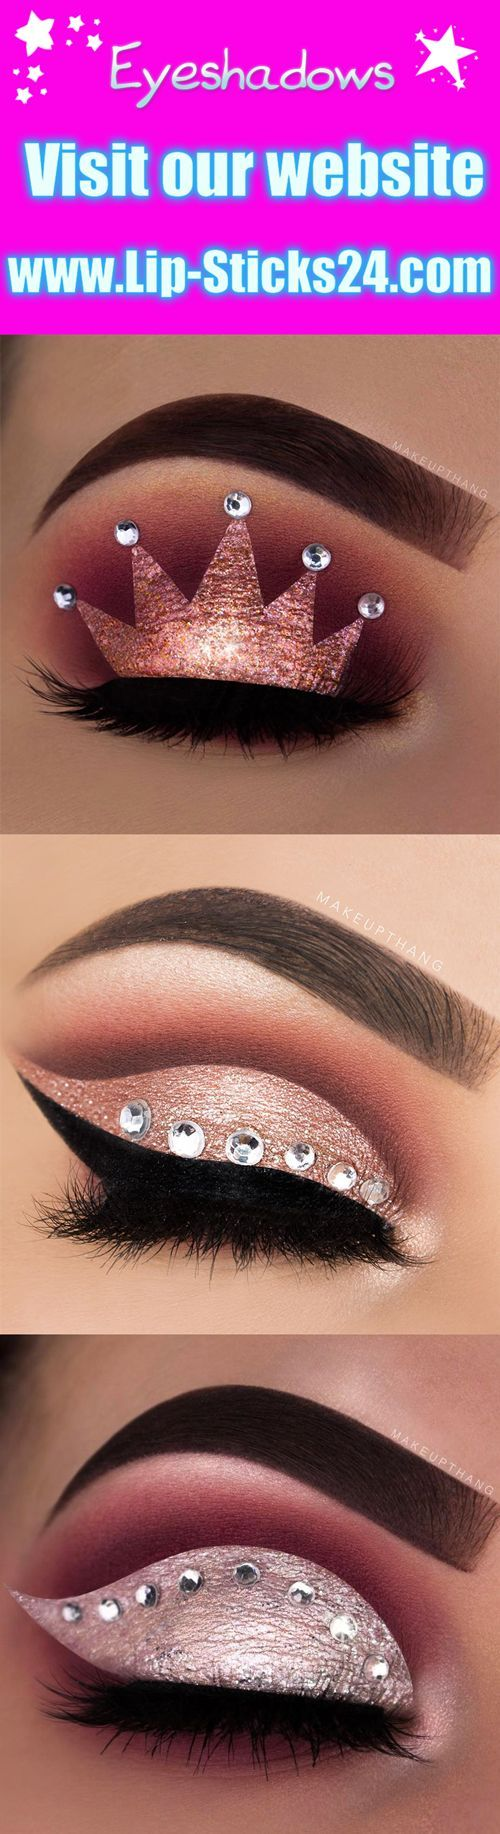 Makeup eyeshadow makeup ideas step by step foundation makeup makeup eyeshadow makeup ideas step by step foundation makeup tutorial for beginners makeup baditri Image collections